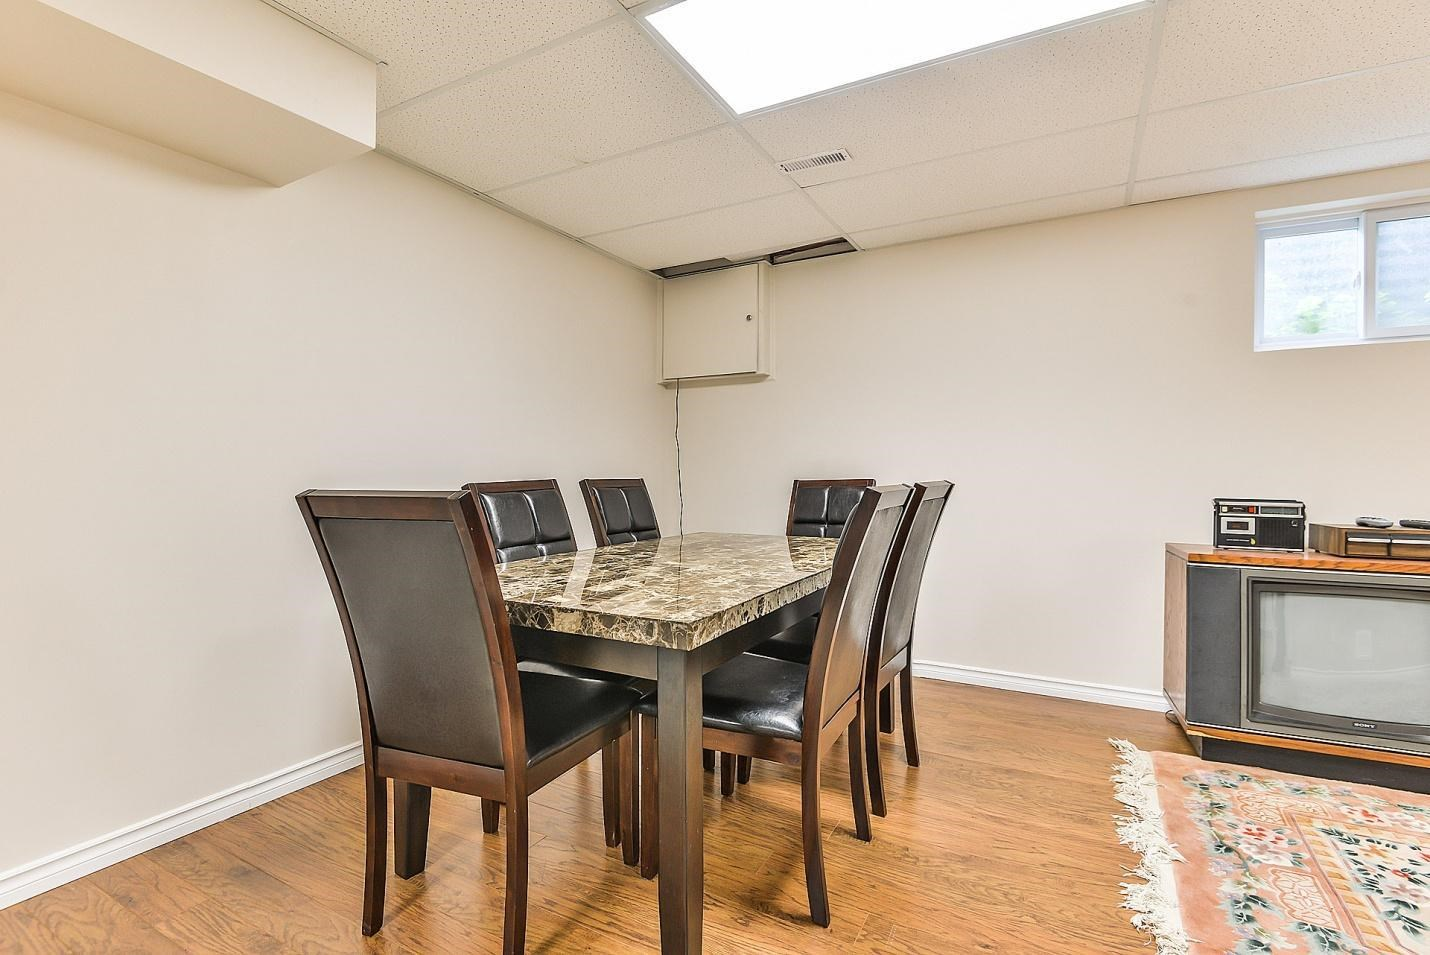 Offered Rooms For Rent & Home To Rent In Toronto